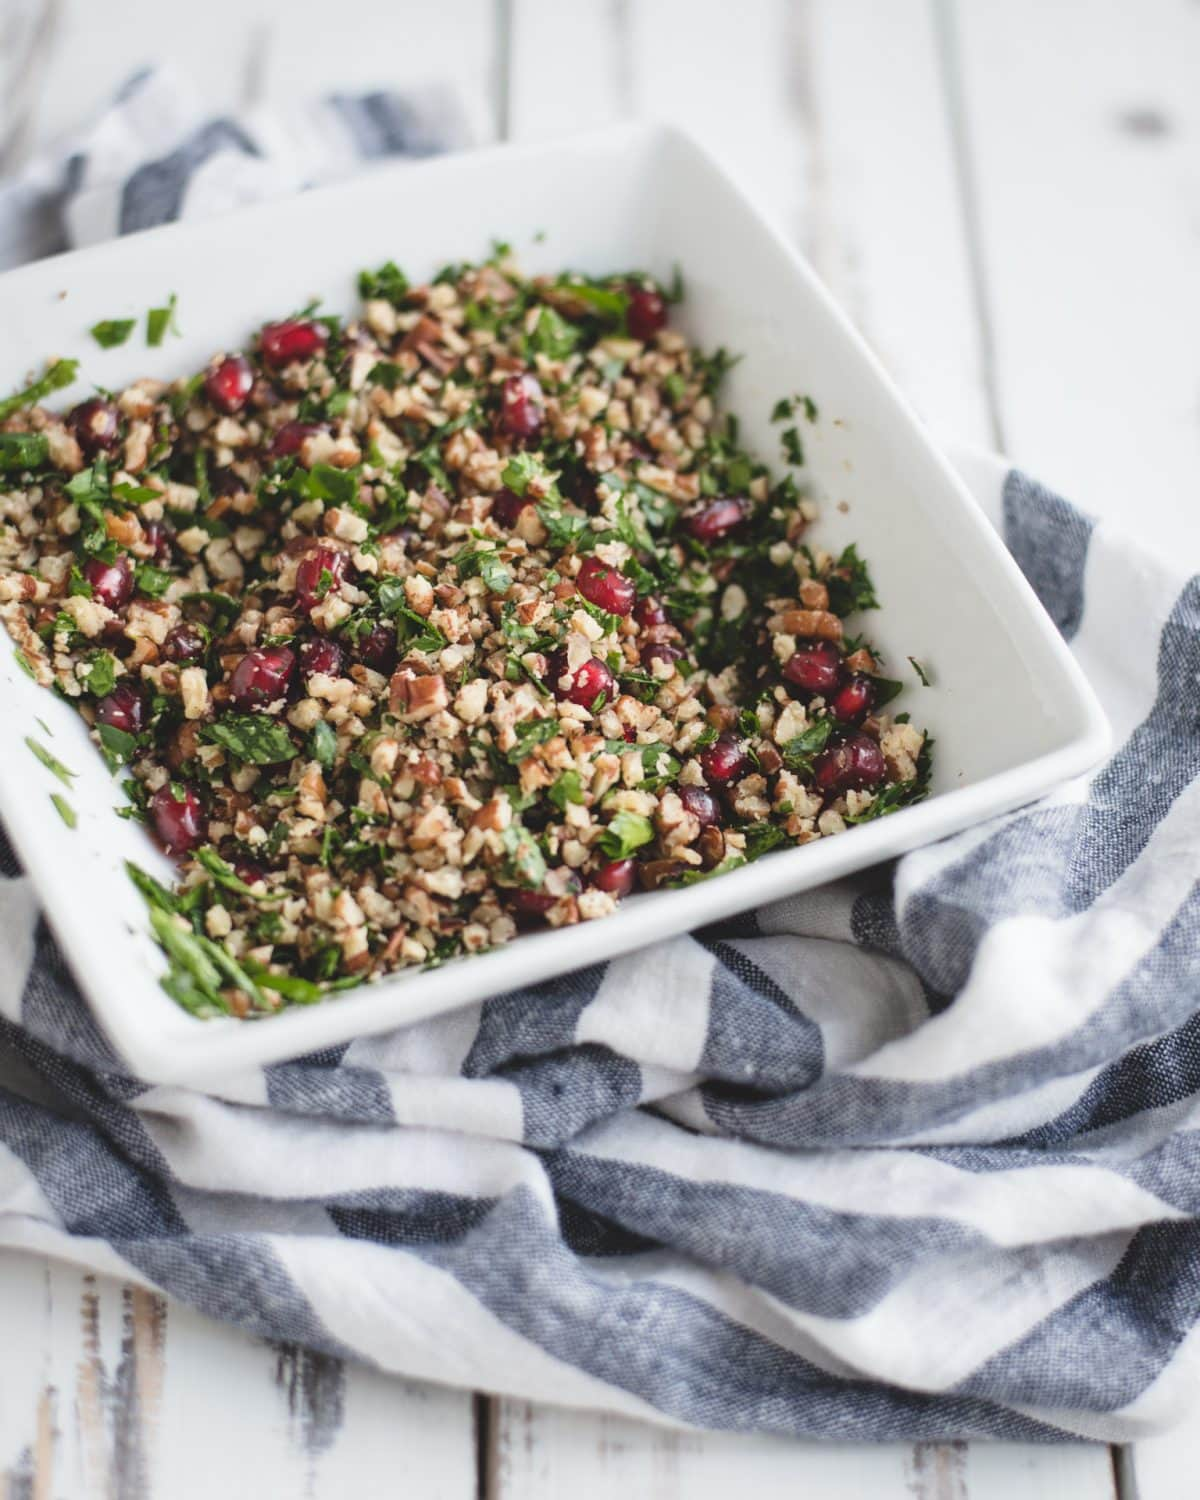 Tossed pomegranate, parsley, and crushed pecans in a bowl